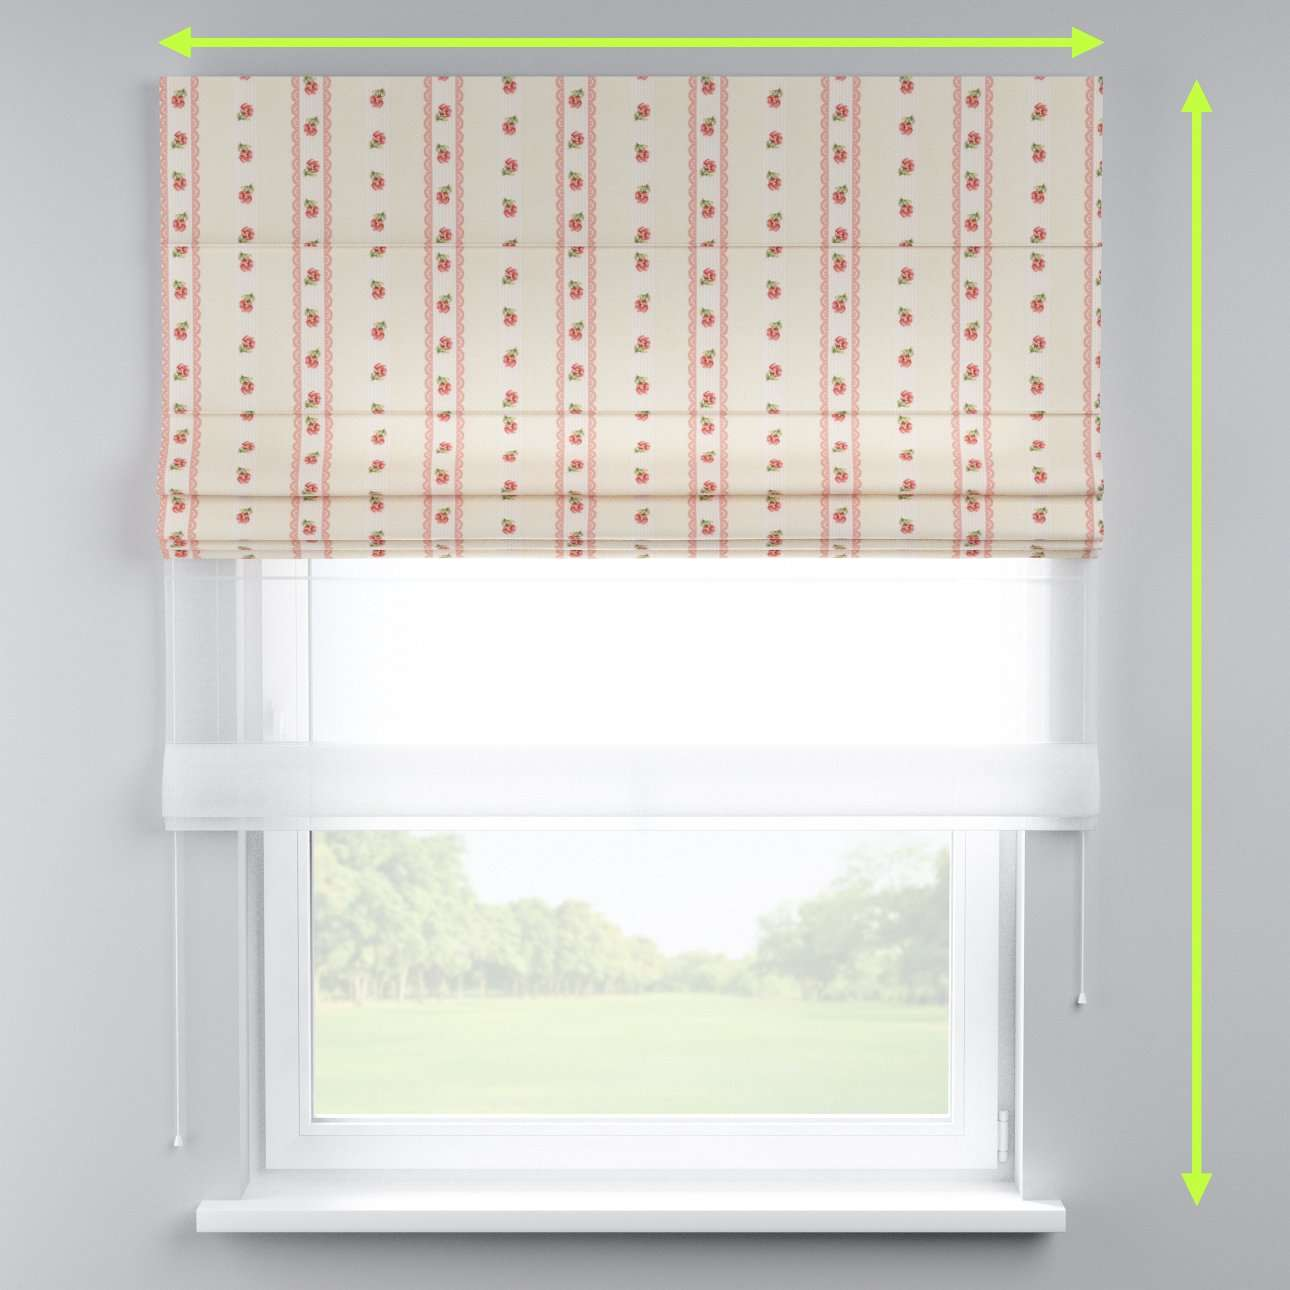 Voile and fabric roman blind (DUO II) in collection Ashley, fabric: 137-48